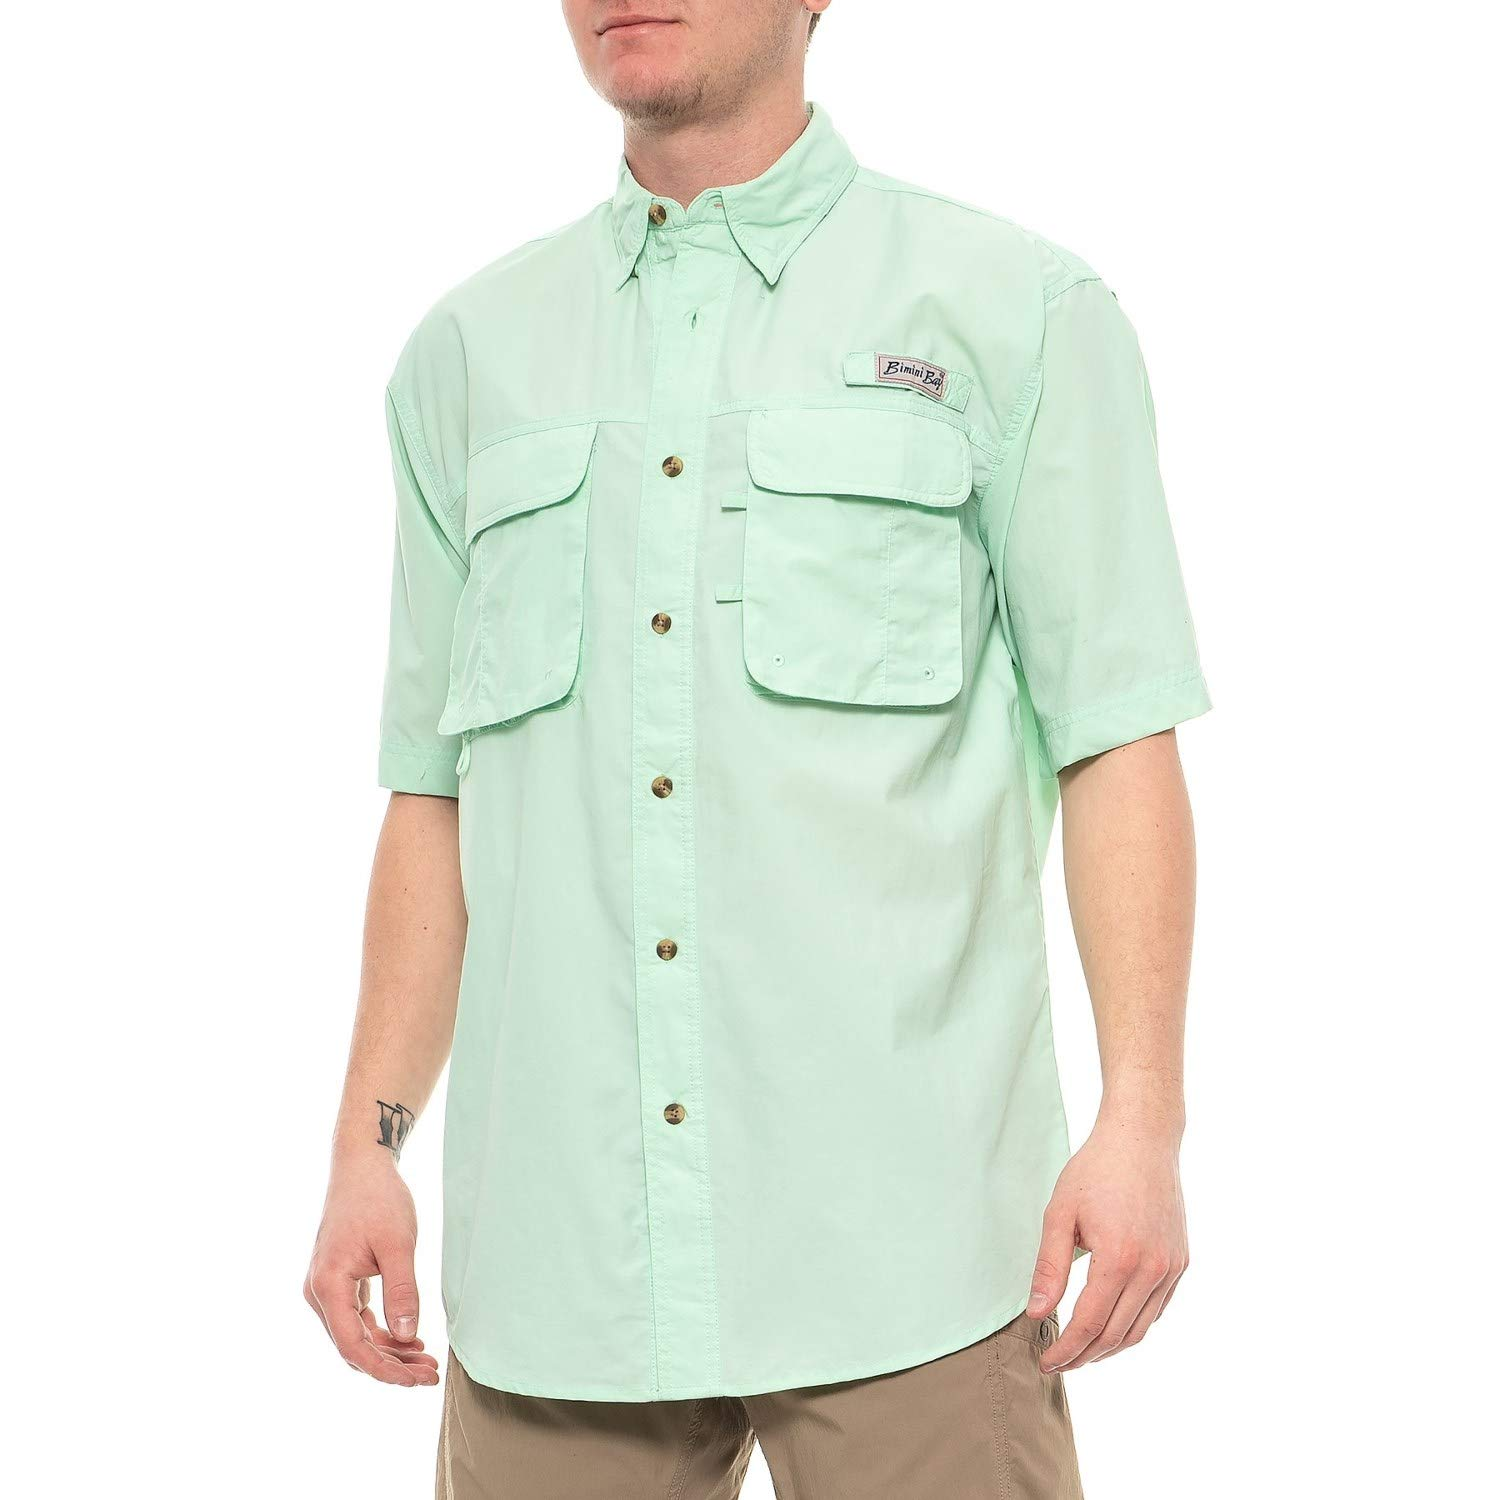 Bimini Bay Outfitters Men's Bimini Flats III Quick Dri Short Sleeve Shirt (Medium, Mist Green) by Bimini Bay Outfitters